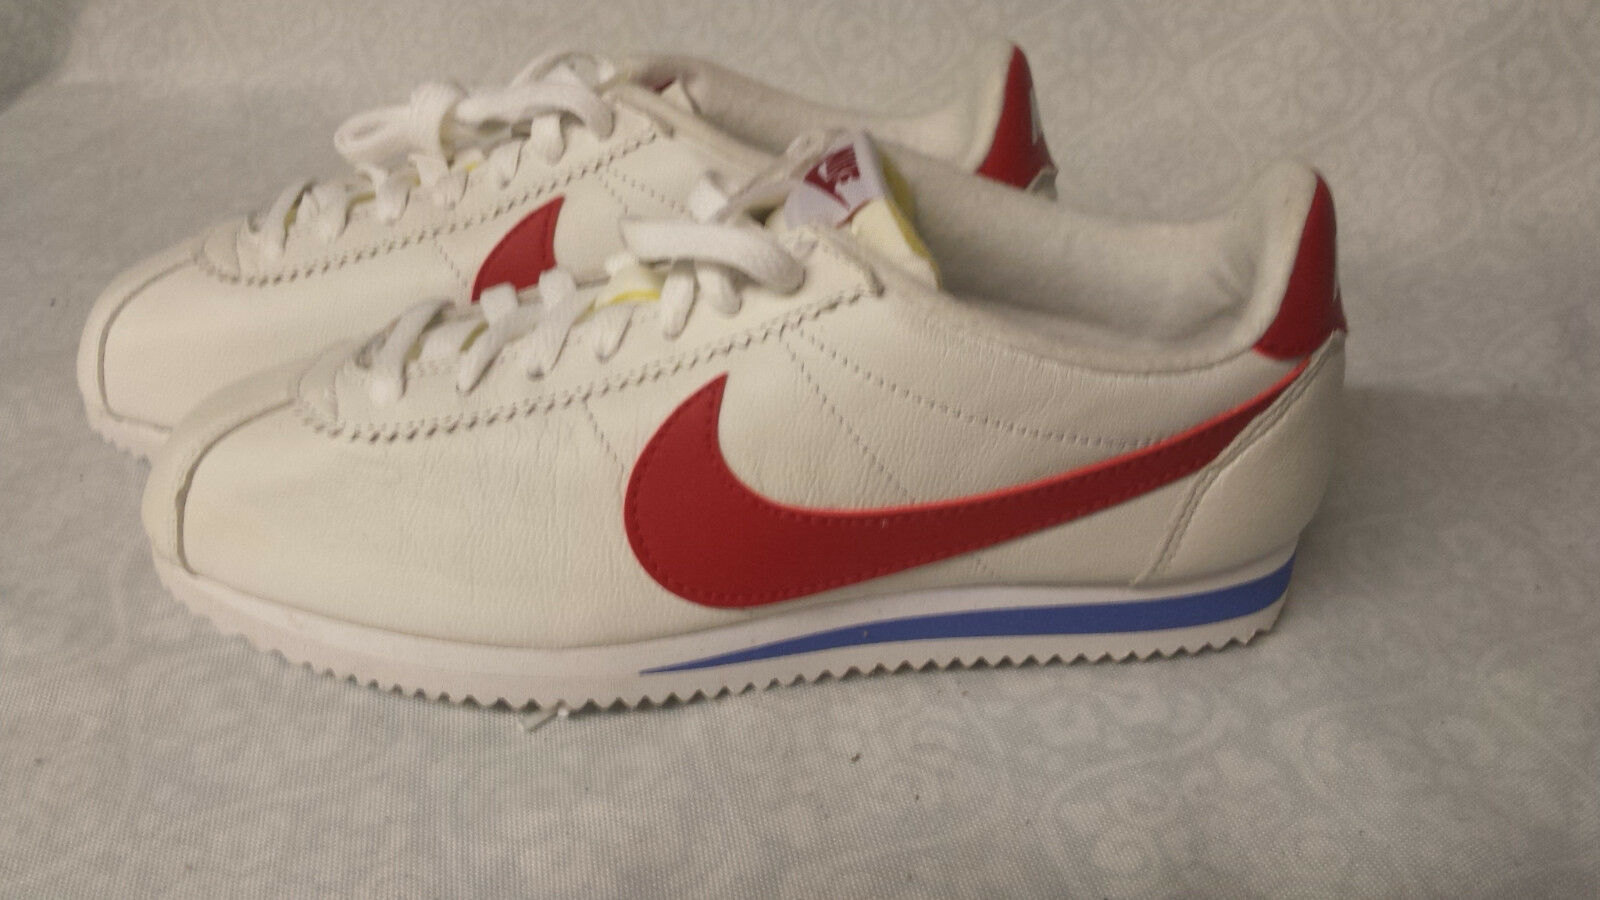 Cheap and beautiful fashion NIKE CORTEZ BASIC LEATHER  size 7 Forrest Gump Red White Blue 882254-164